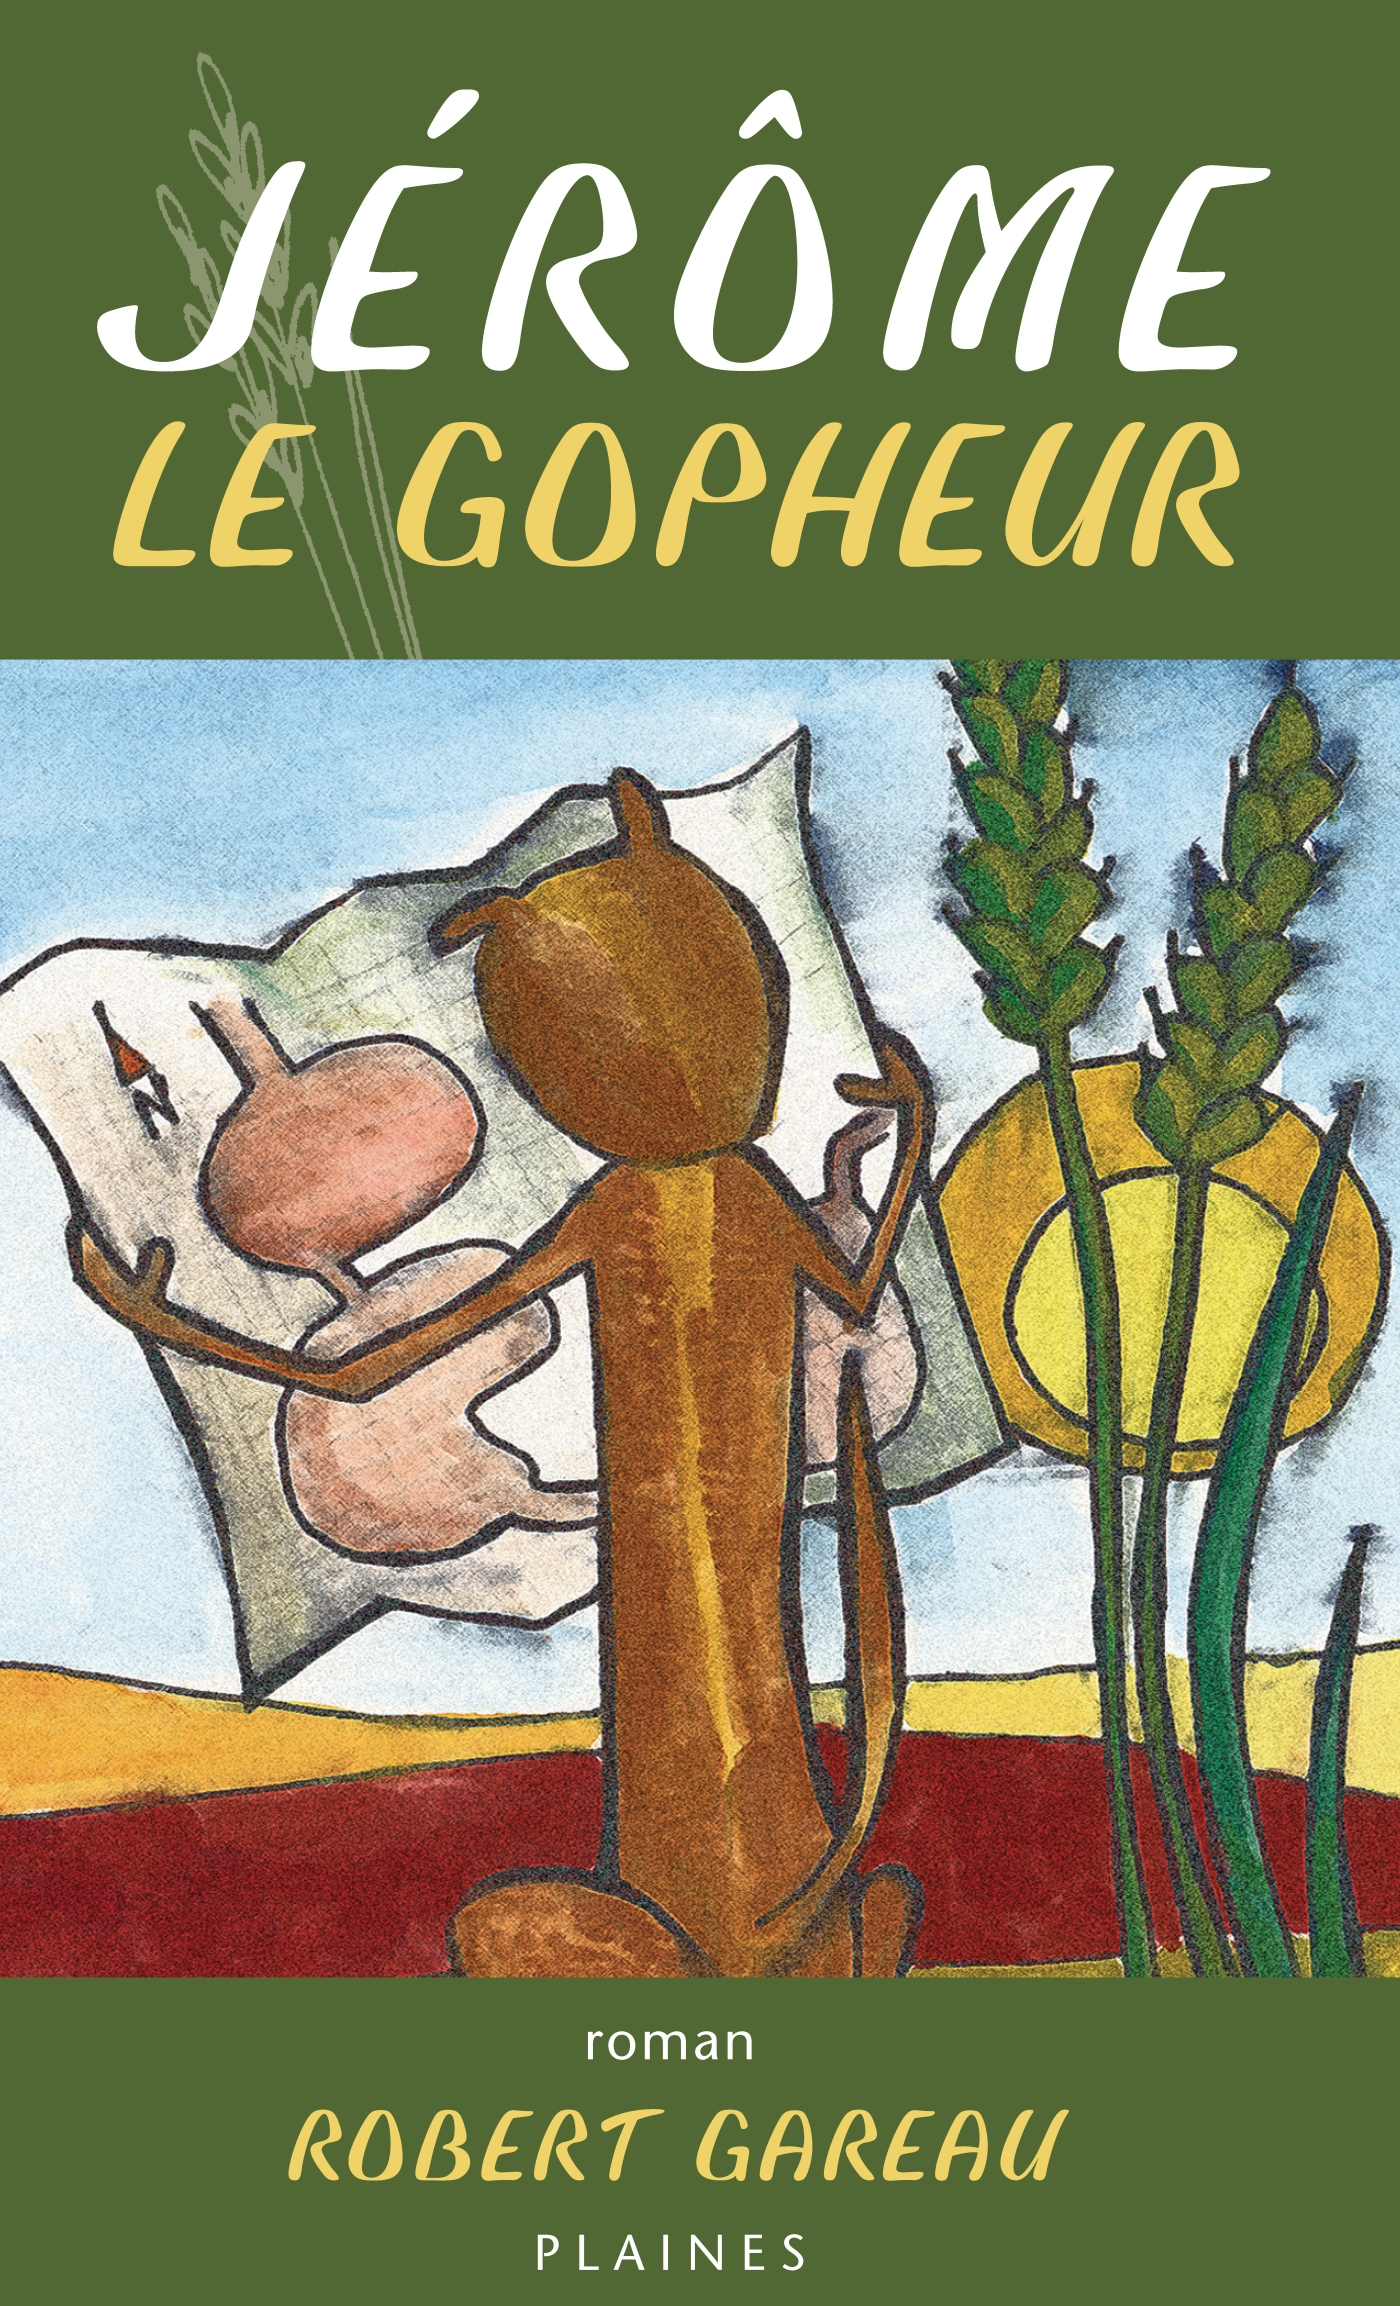 JEROME LE GOPHEUR